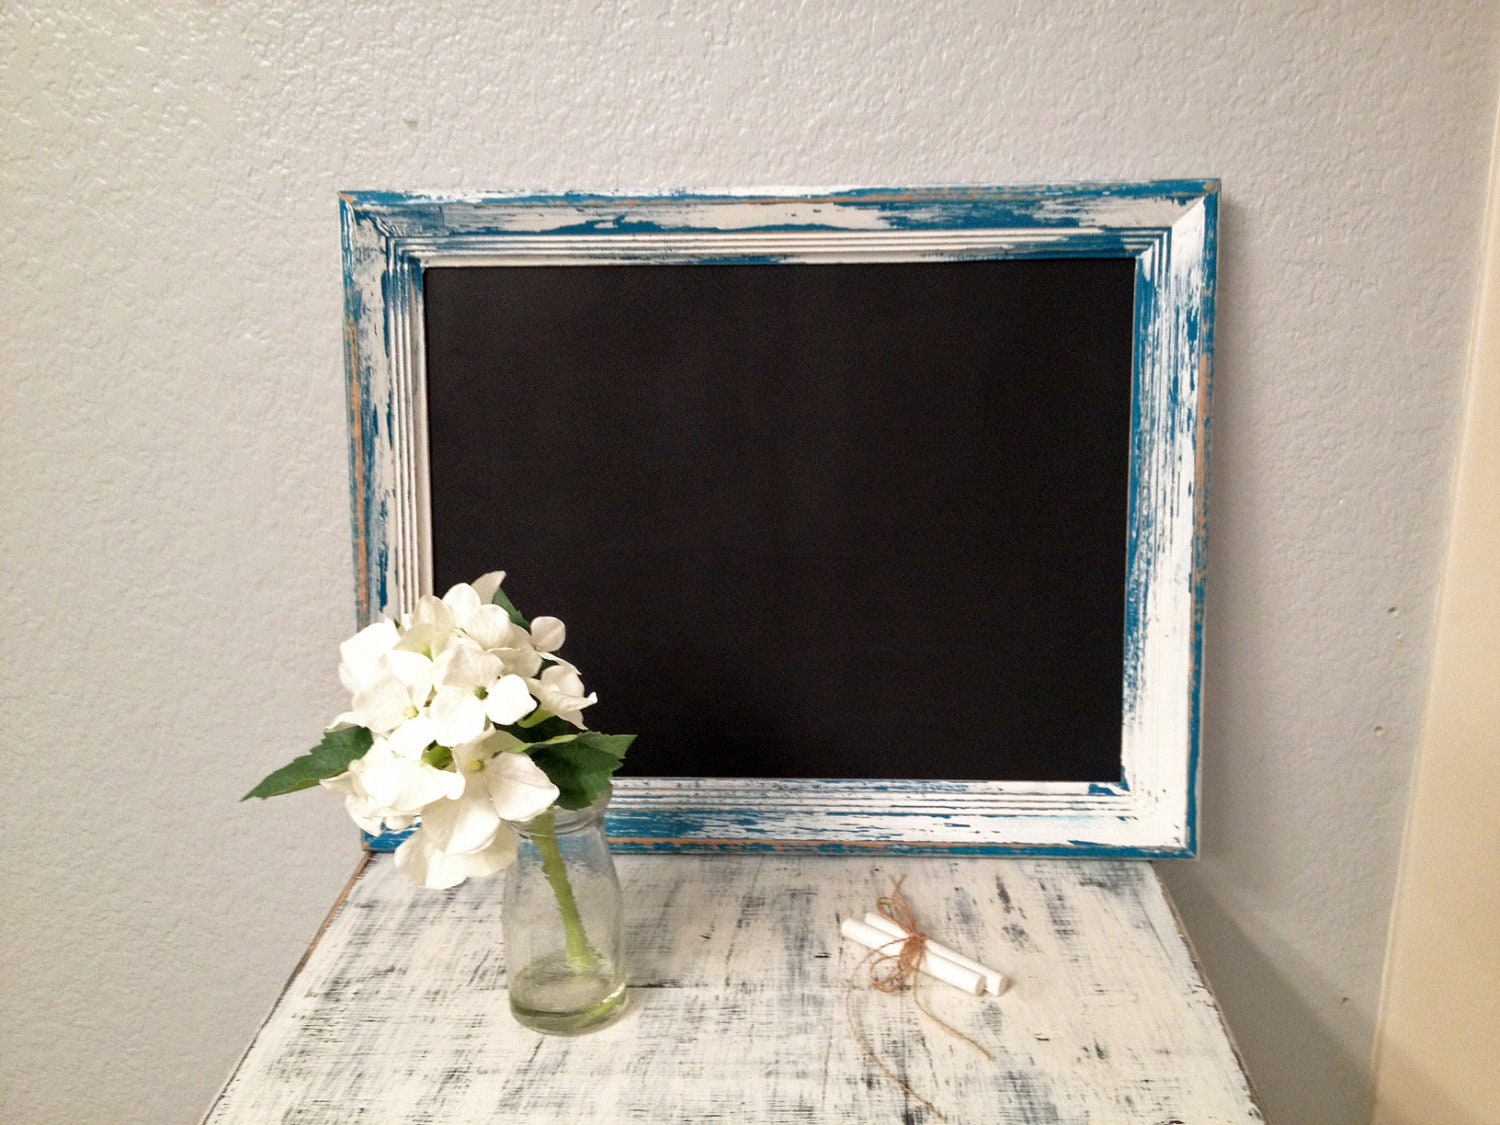 Decorative Chalkboard With Distressed Handpainted Turquoise. Dinning Room Table. Rooms For Rent In Silver Spring Maryland. Decorating Living Room. Boys Room Decor Ideas. Candle Sconces Wall Decor. Rooms For Rent Rancho Cucamonga. Nautical Home Decor. Home Bar Decorations